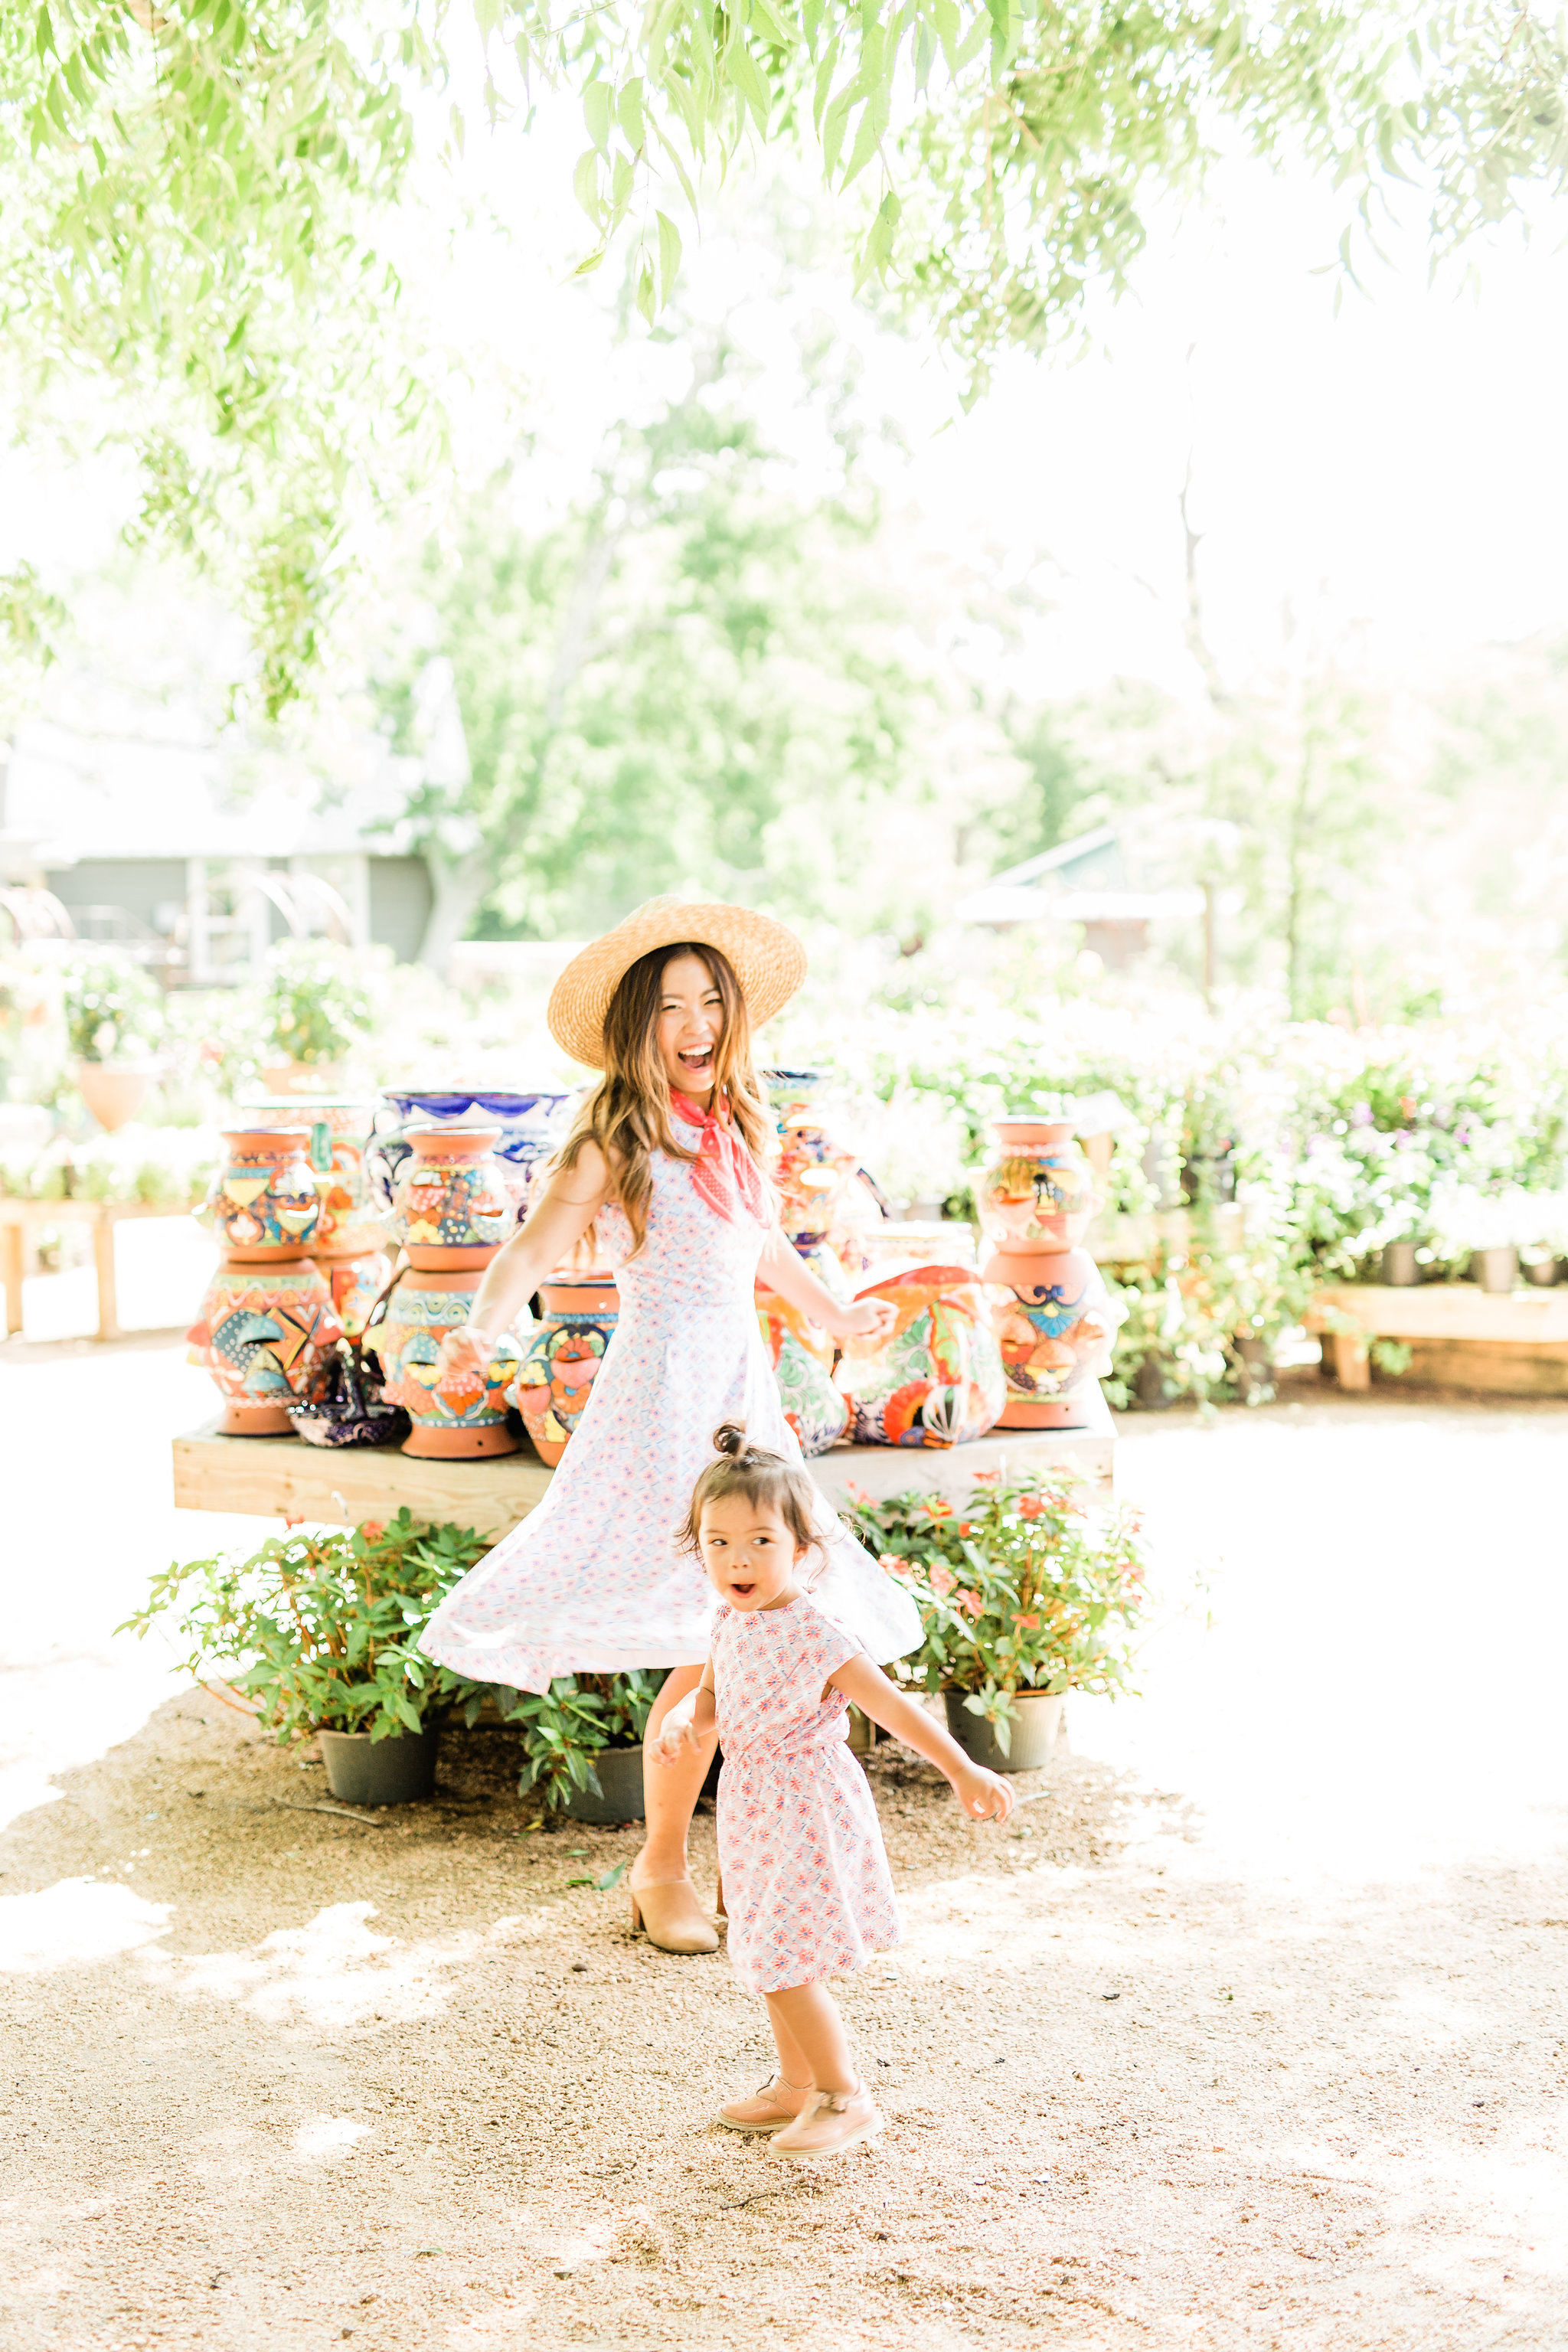 Joules Amelie Fit & Flare Mosaic Dress Mommy and Me Matching Twinning Outfit ream Summer Mosaic Annabelle Jersey Dress 1.jpg